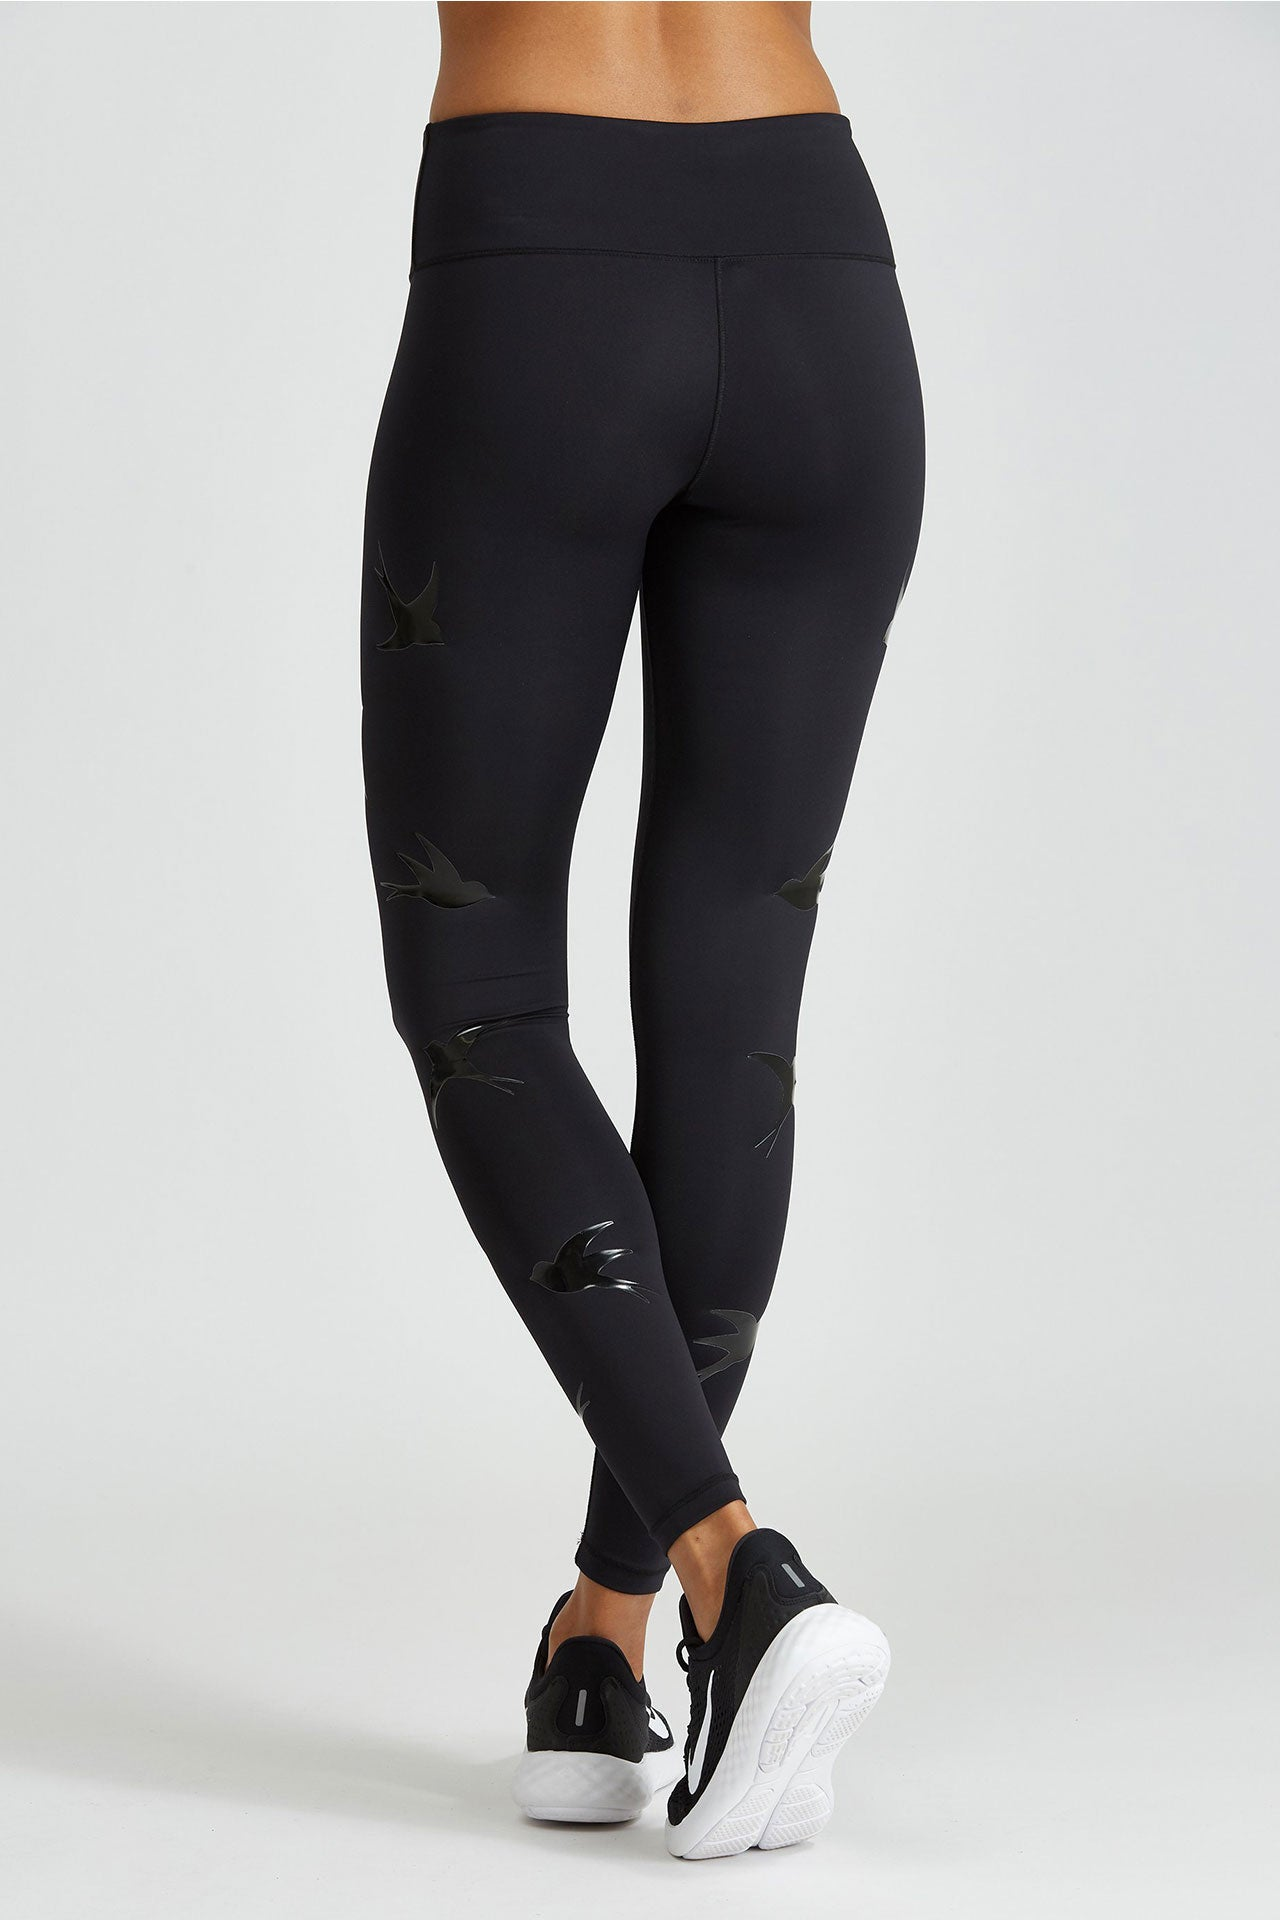 Noli Yoga Impact Legging - Black Bird - Sculptique